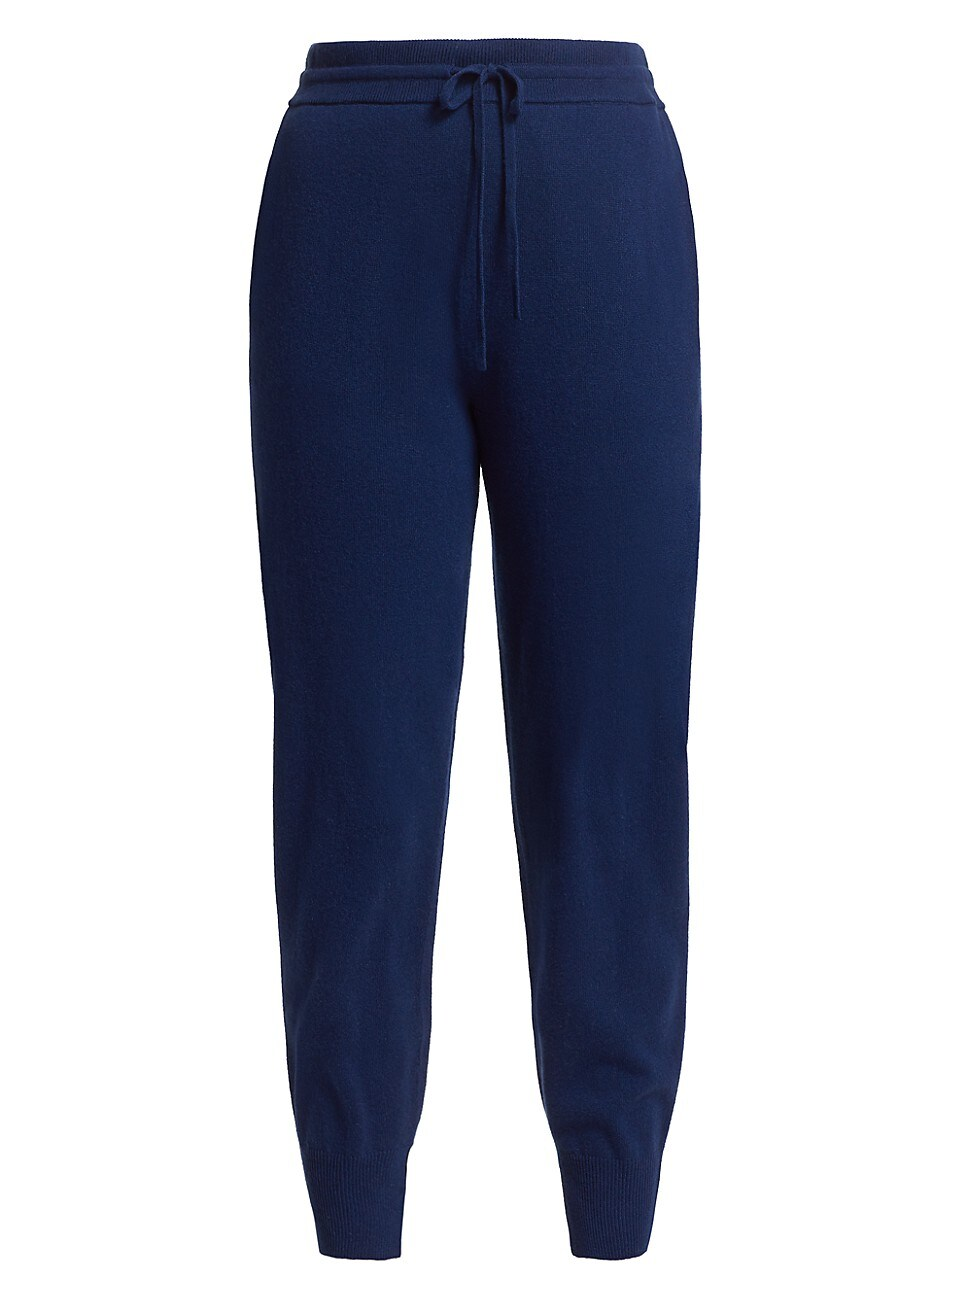 Theory WOMEN'S SLIT CASHMERE JOGGERS